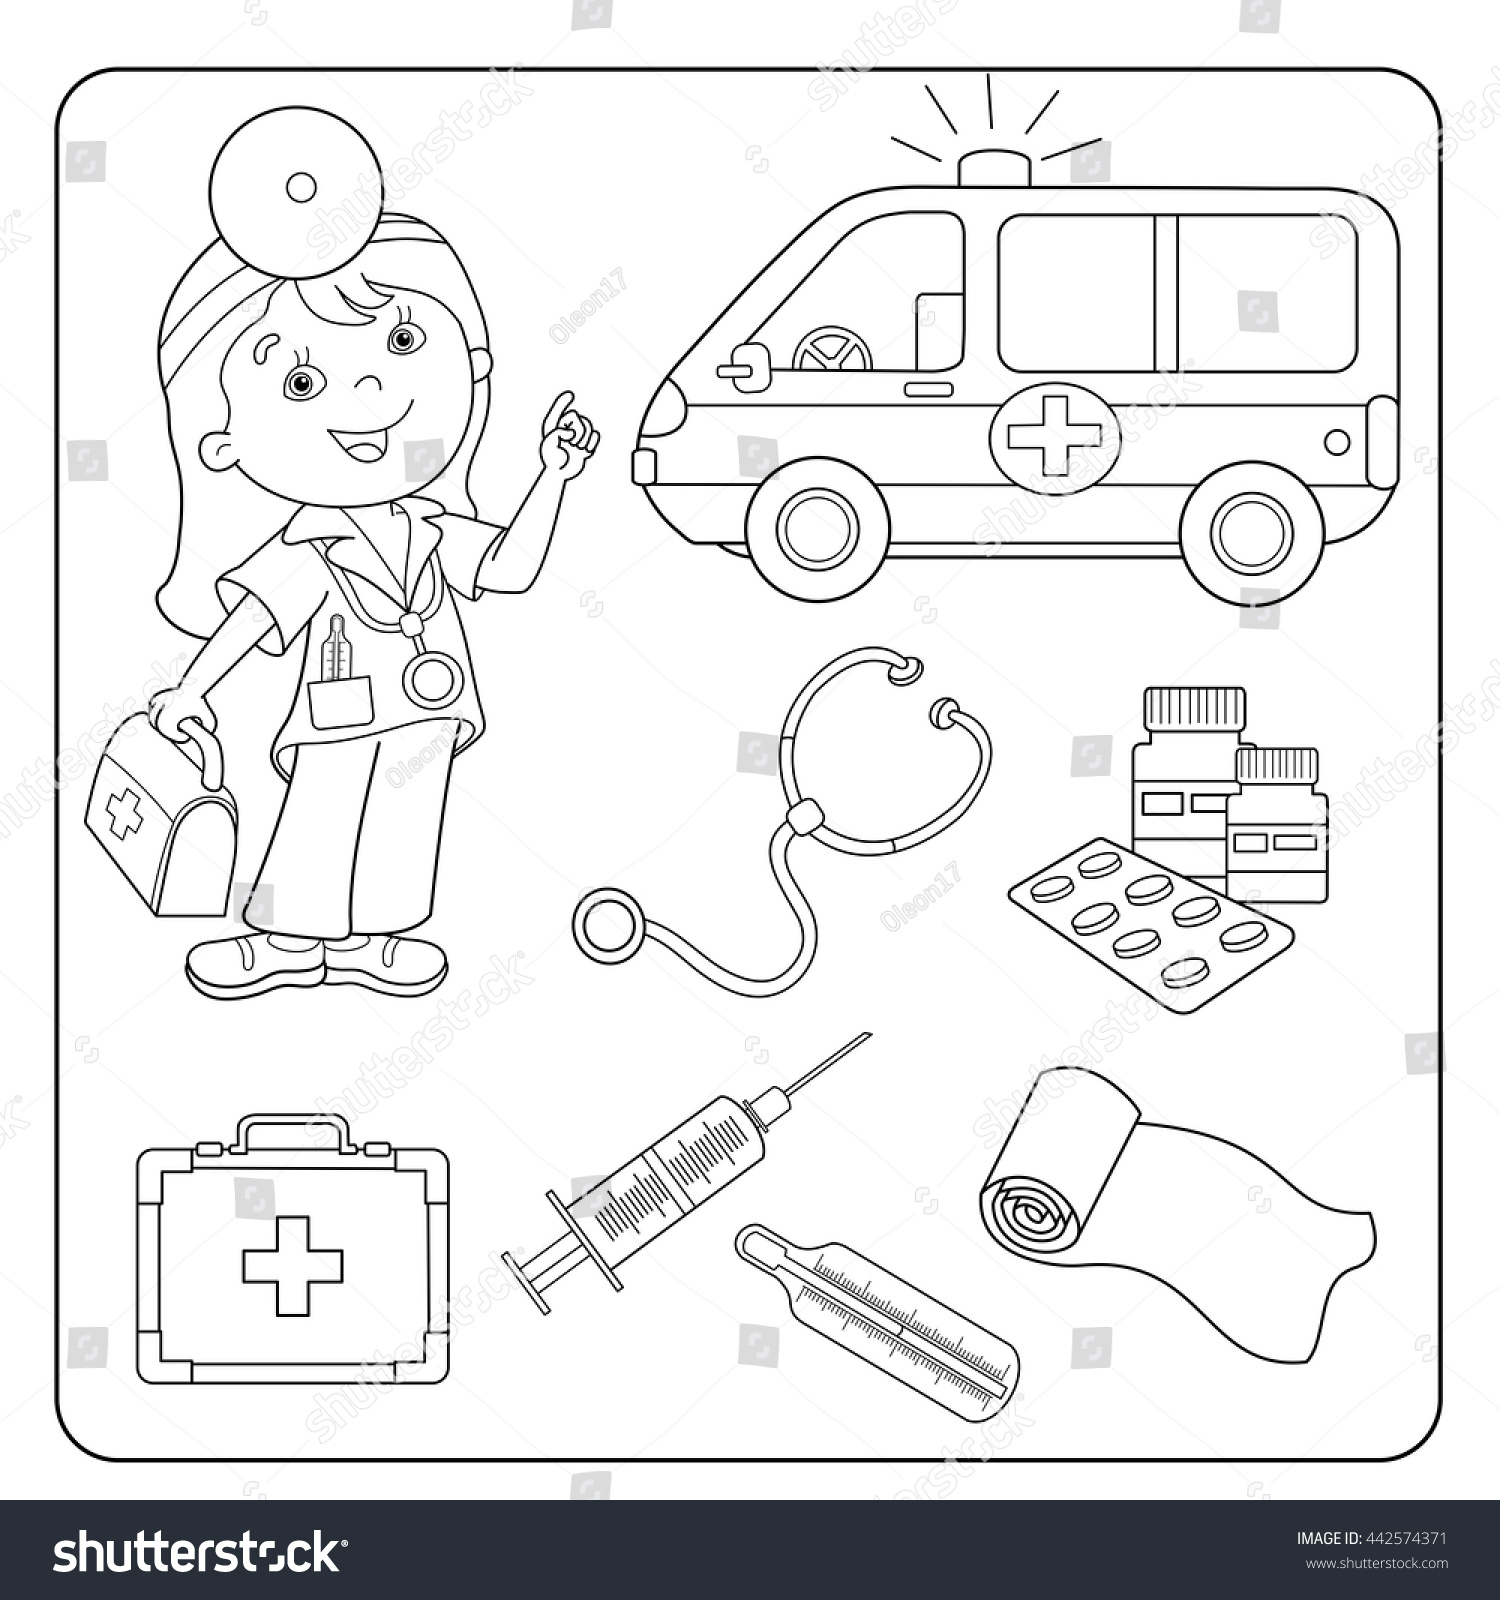 Aid Coloring Pages Kids